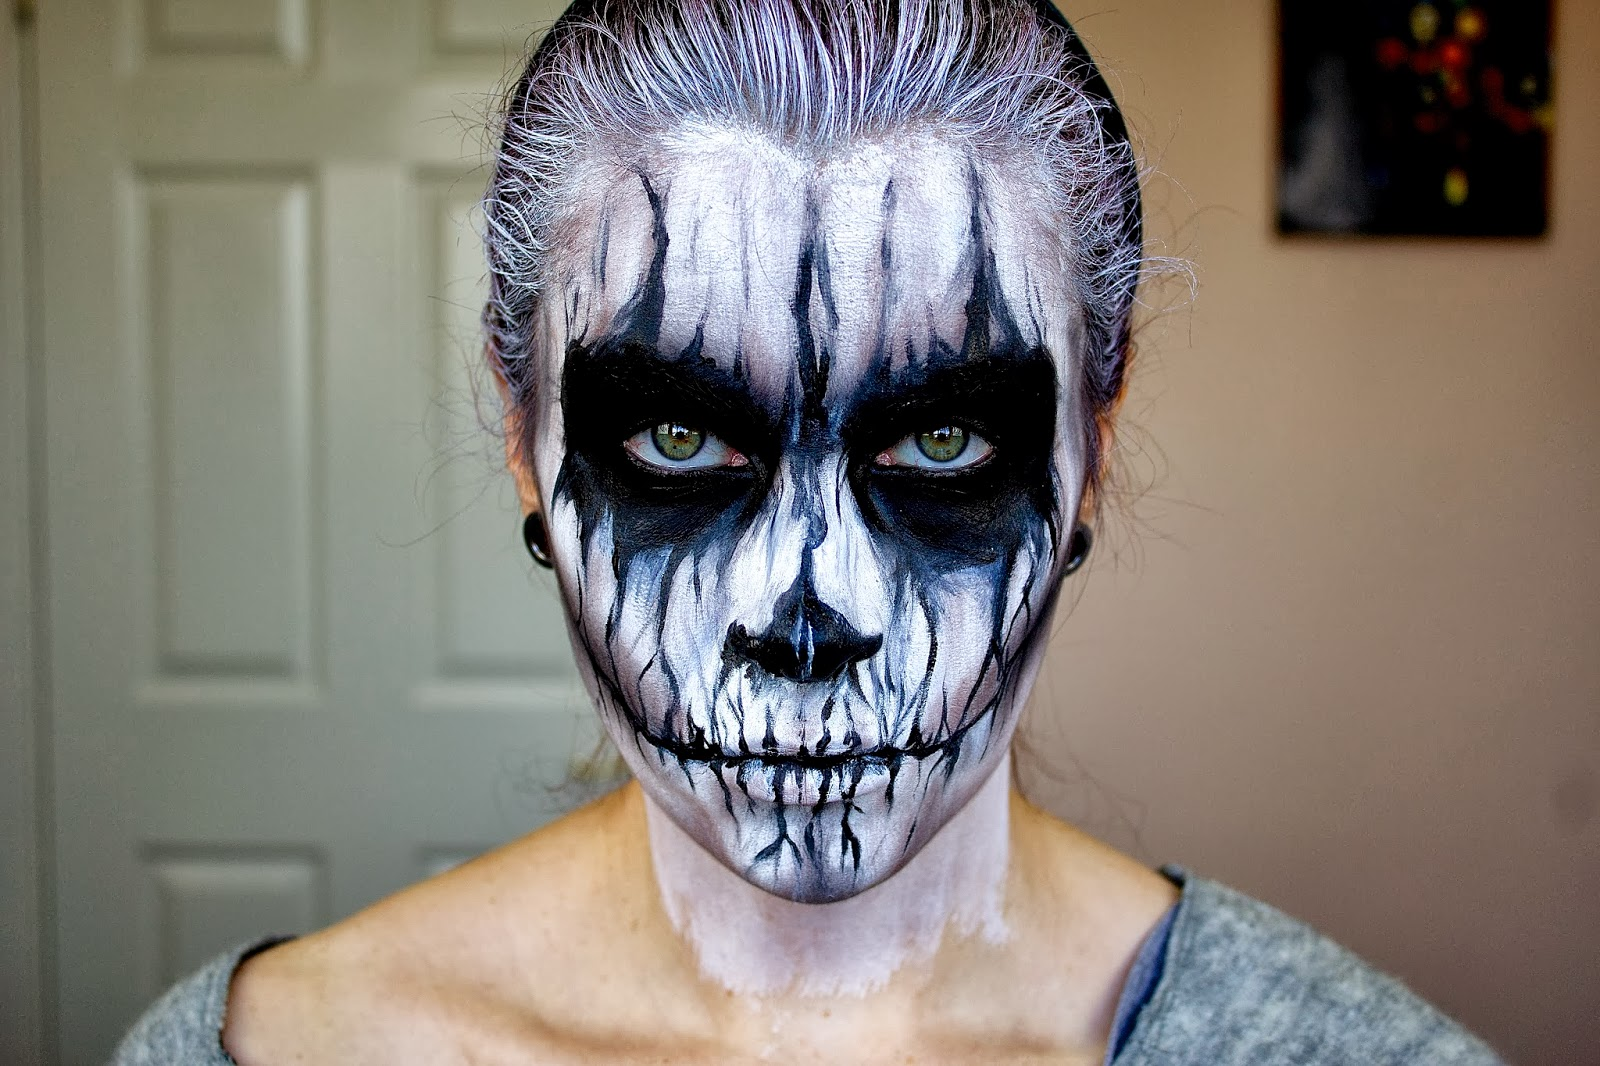 20 of the creepiest halloween makeup ideas bored panda - Image maquillage halloween ...